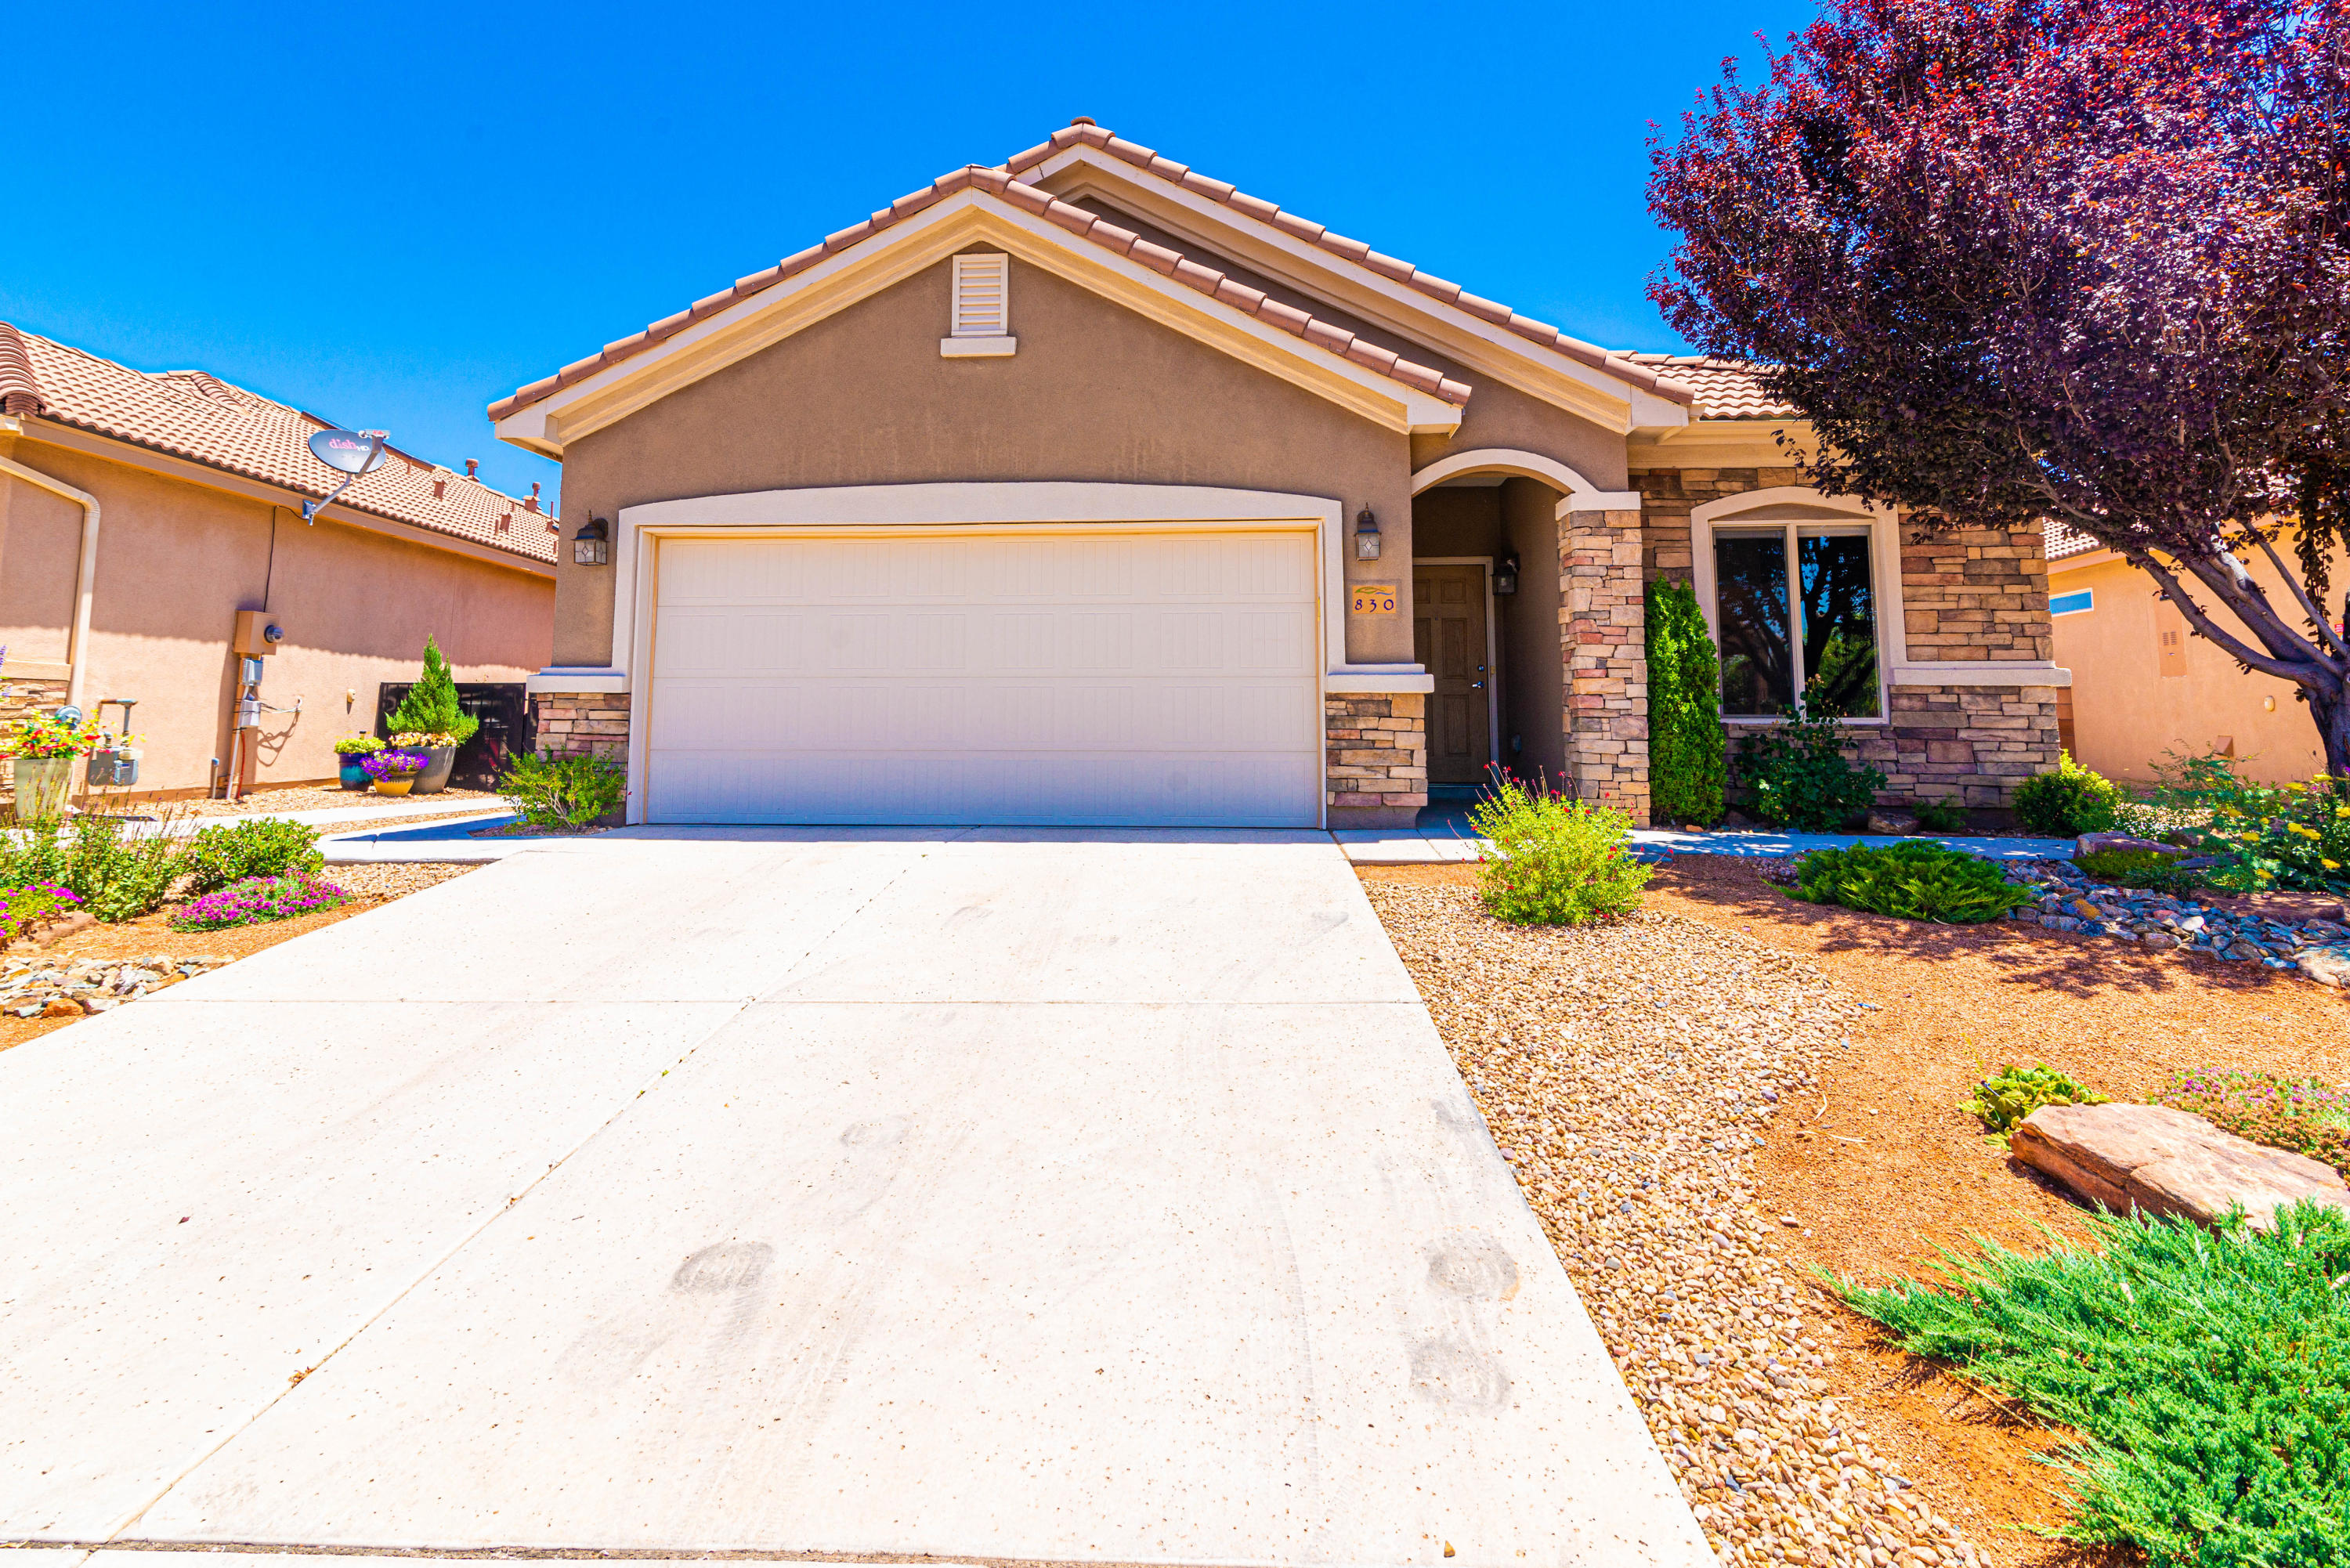 MOVE IN READY!! ALL INSPECTIONS COMPLETE! Welcome to Del Webb Alegria, a 55+ Active Adult Community!  This 'Laguna' model has 1867SF, Huge Master Bedroom w/door to back patio, Master Bath has his&hers walk-in closets, garden tub, separate shower, skylights are located in the kitchen and both bathrooms, nice size guest bedroom with full guest bath! Kitchen is open to the great room/dining and has a pantry, plenty of cabinetry and counter-top space, island and a nook!! All appliances stay including washer and dryer. Beautiful Floor Tile!! REF AIR! Gas log Fireplace with stone surround! NEW CARPET INSTALLED IN BEDROOMS JUNE 23RD.  HOME HAS JUST BEEN PROFESSIONALLY CLEANED.  Gorgeous Professional Landscaping in Front and Back along with beautiful concrete and walkways!!